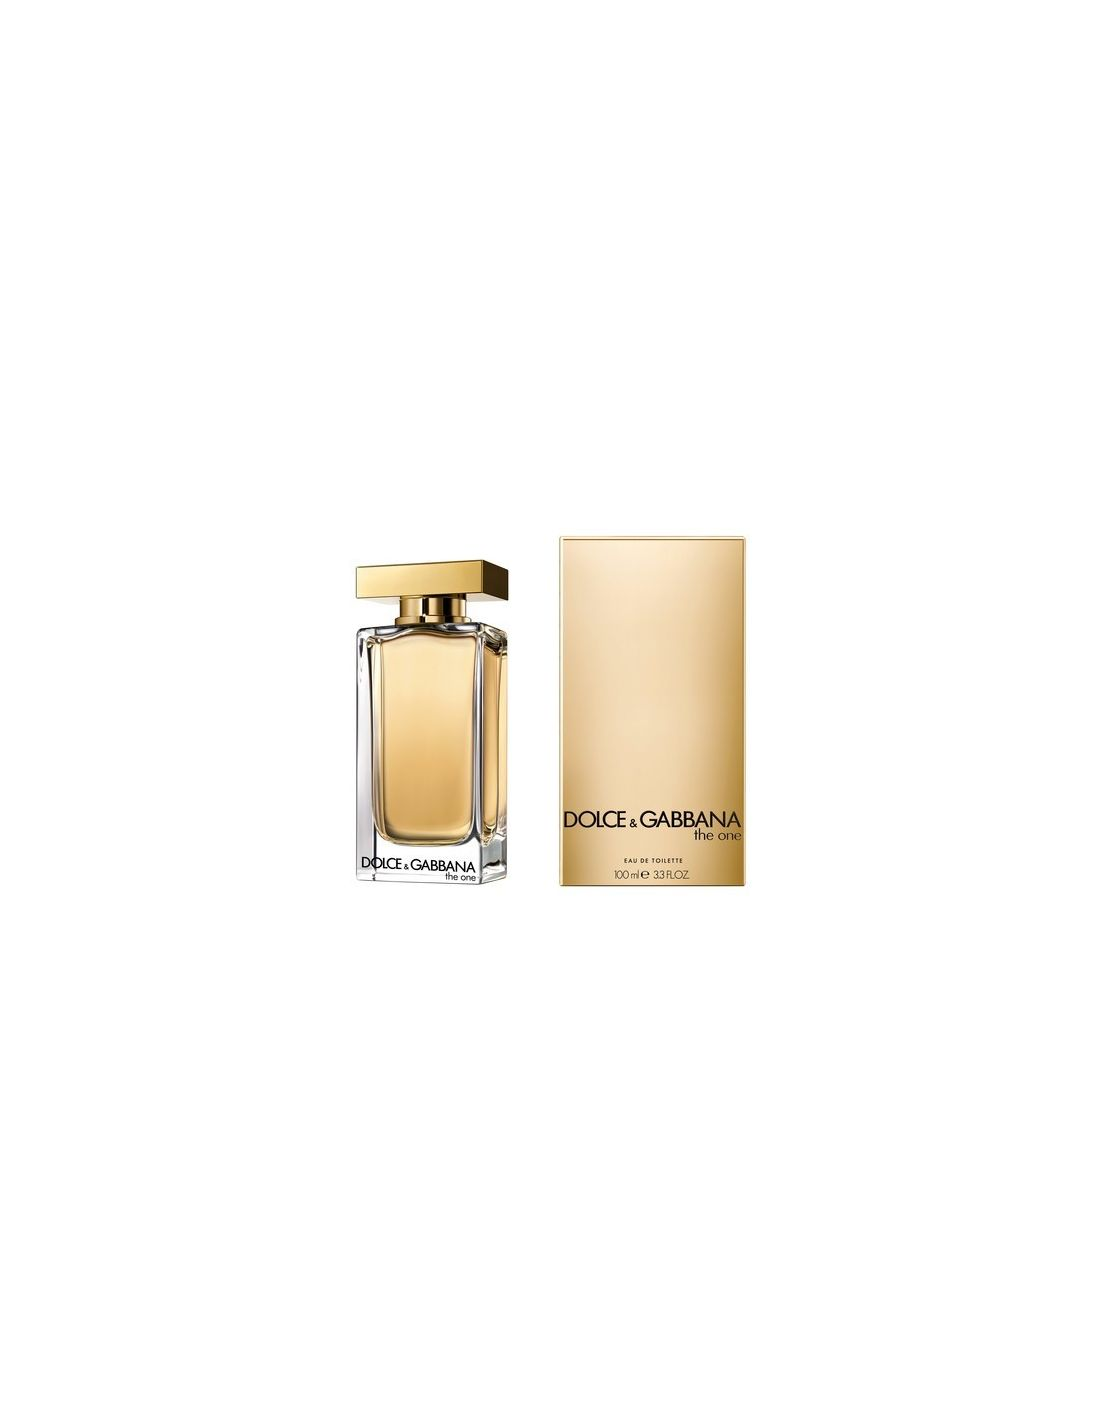 Dolce   Gabbana The One Eau de Toilette 100ml à venda na Perfumes 24 ... f01993f7cb